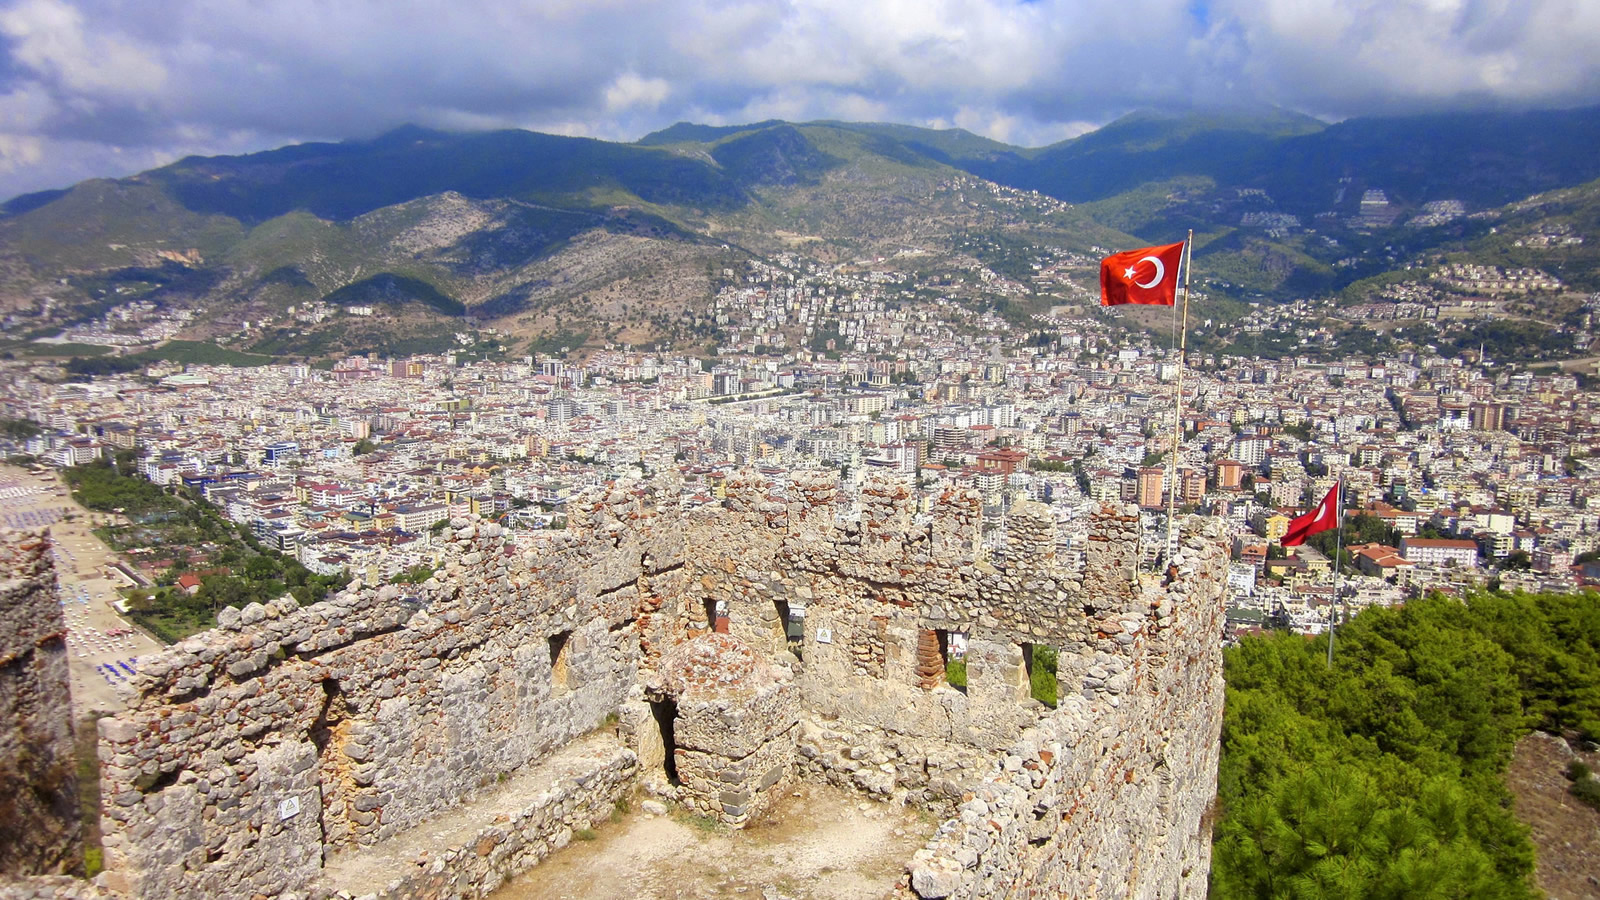 Turkish flag on old ruins, with a modern city in the background.